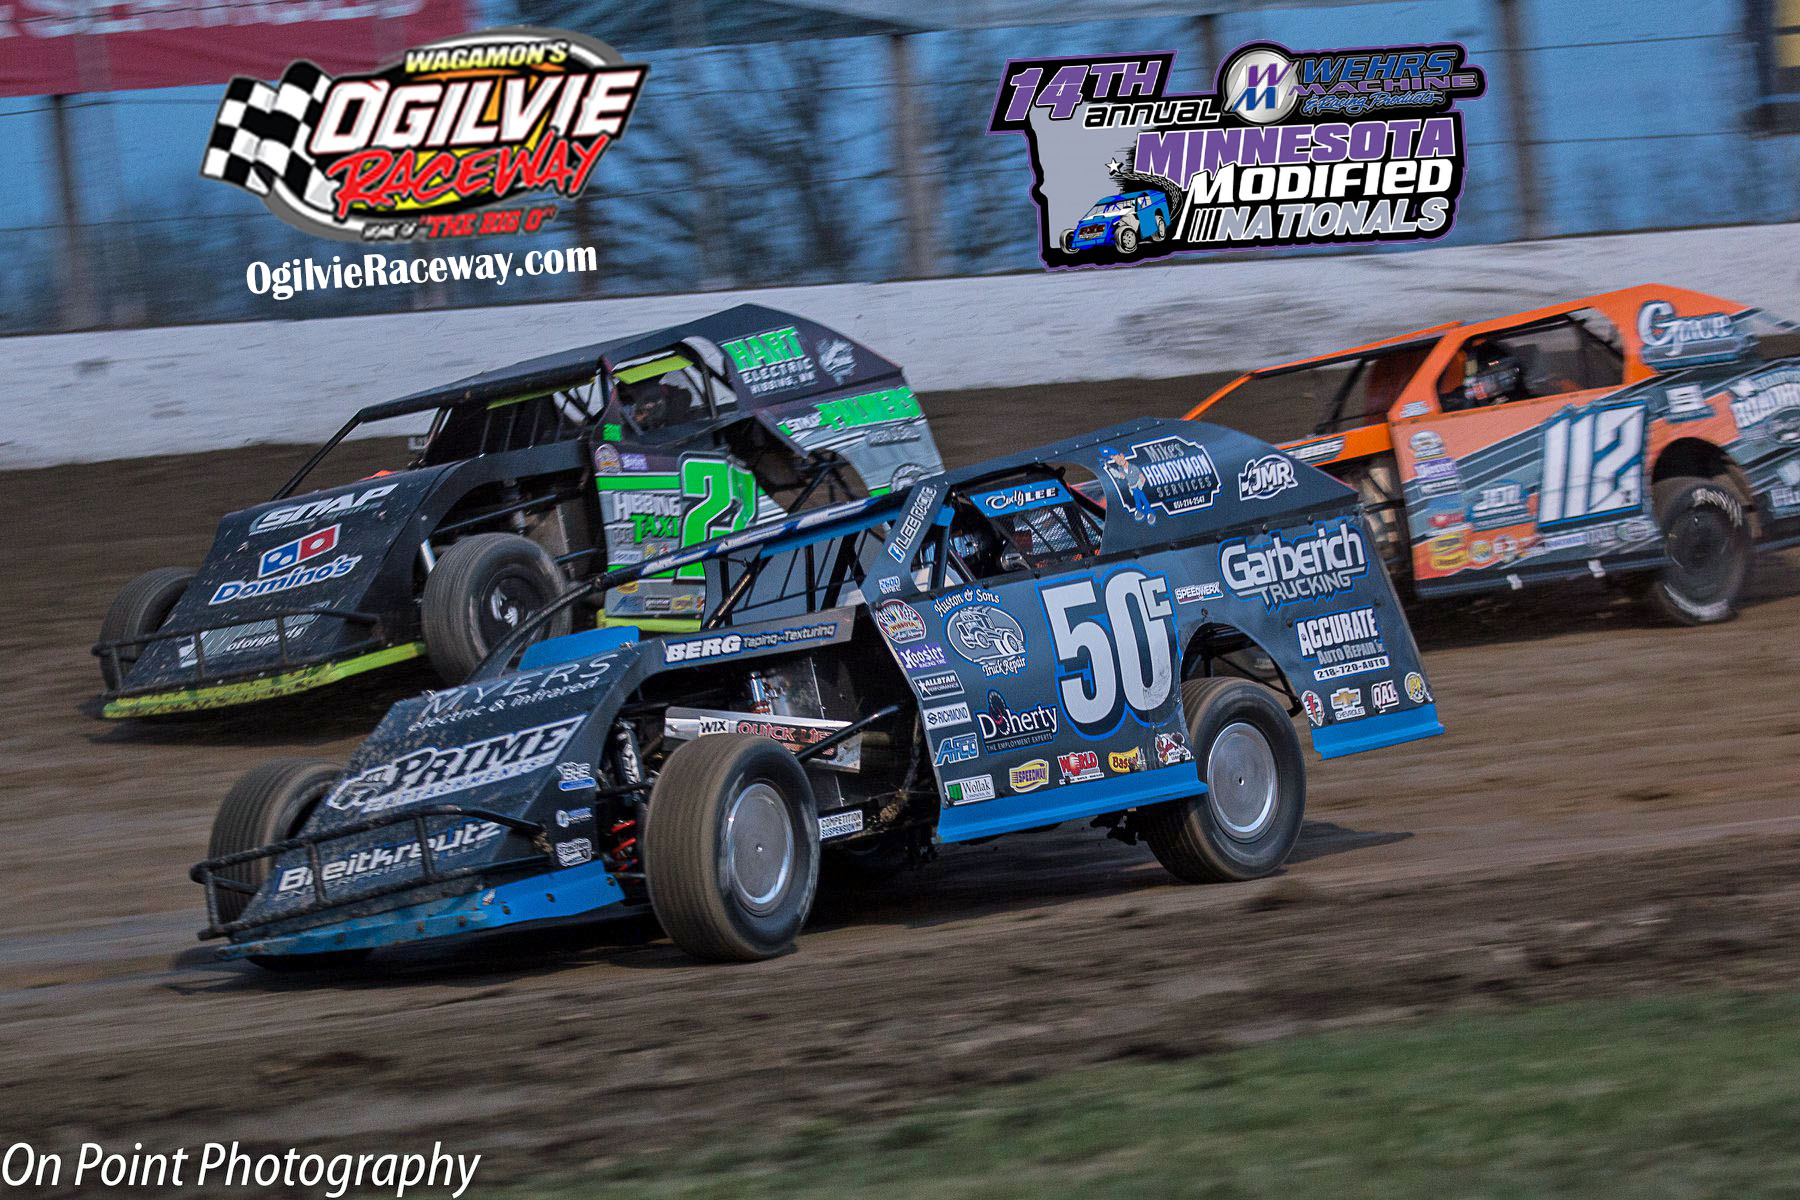 Mod Nationals RACES ON as Scheduled – PRACTICE Friday Night POSTPONED to Saturday